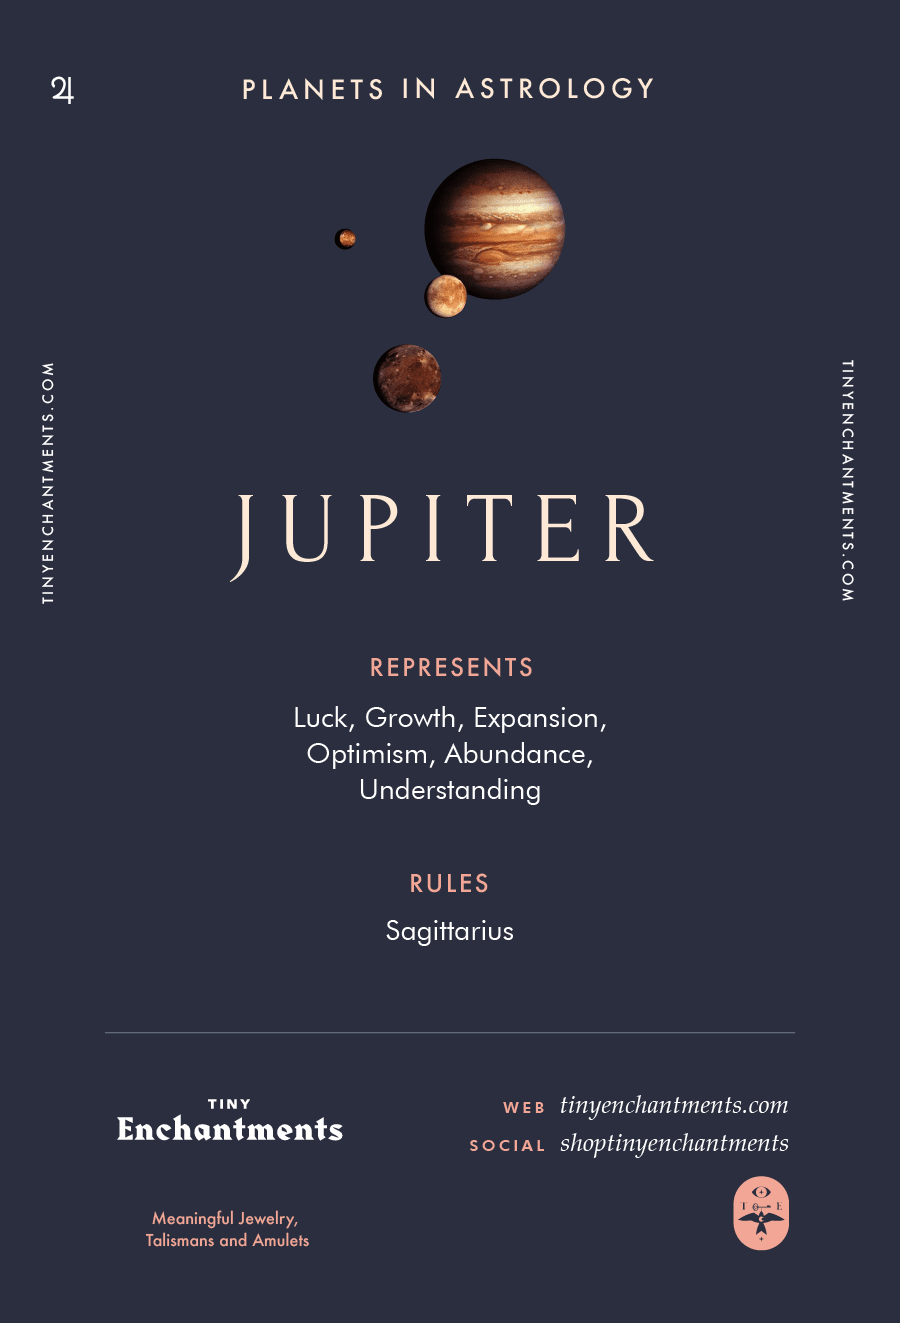 Jupiter Sign in Astrology - Planet Meaning, Zodiac, Symbolism, Characteristics Infographic